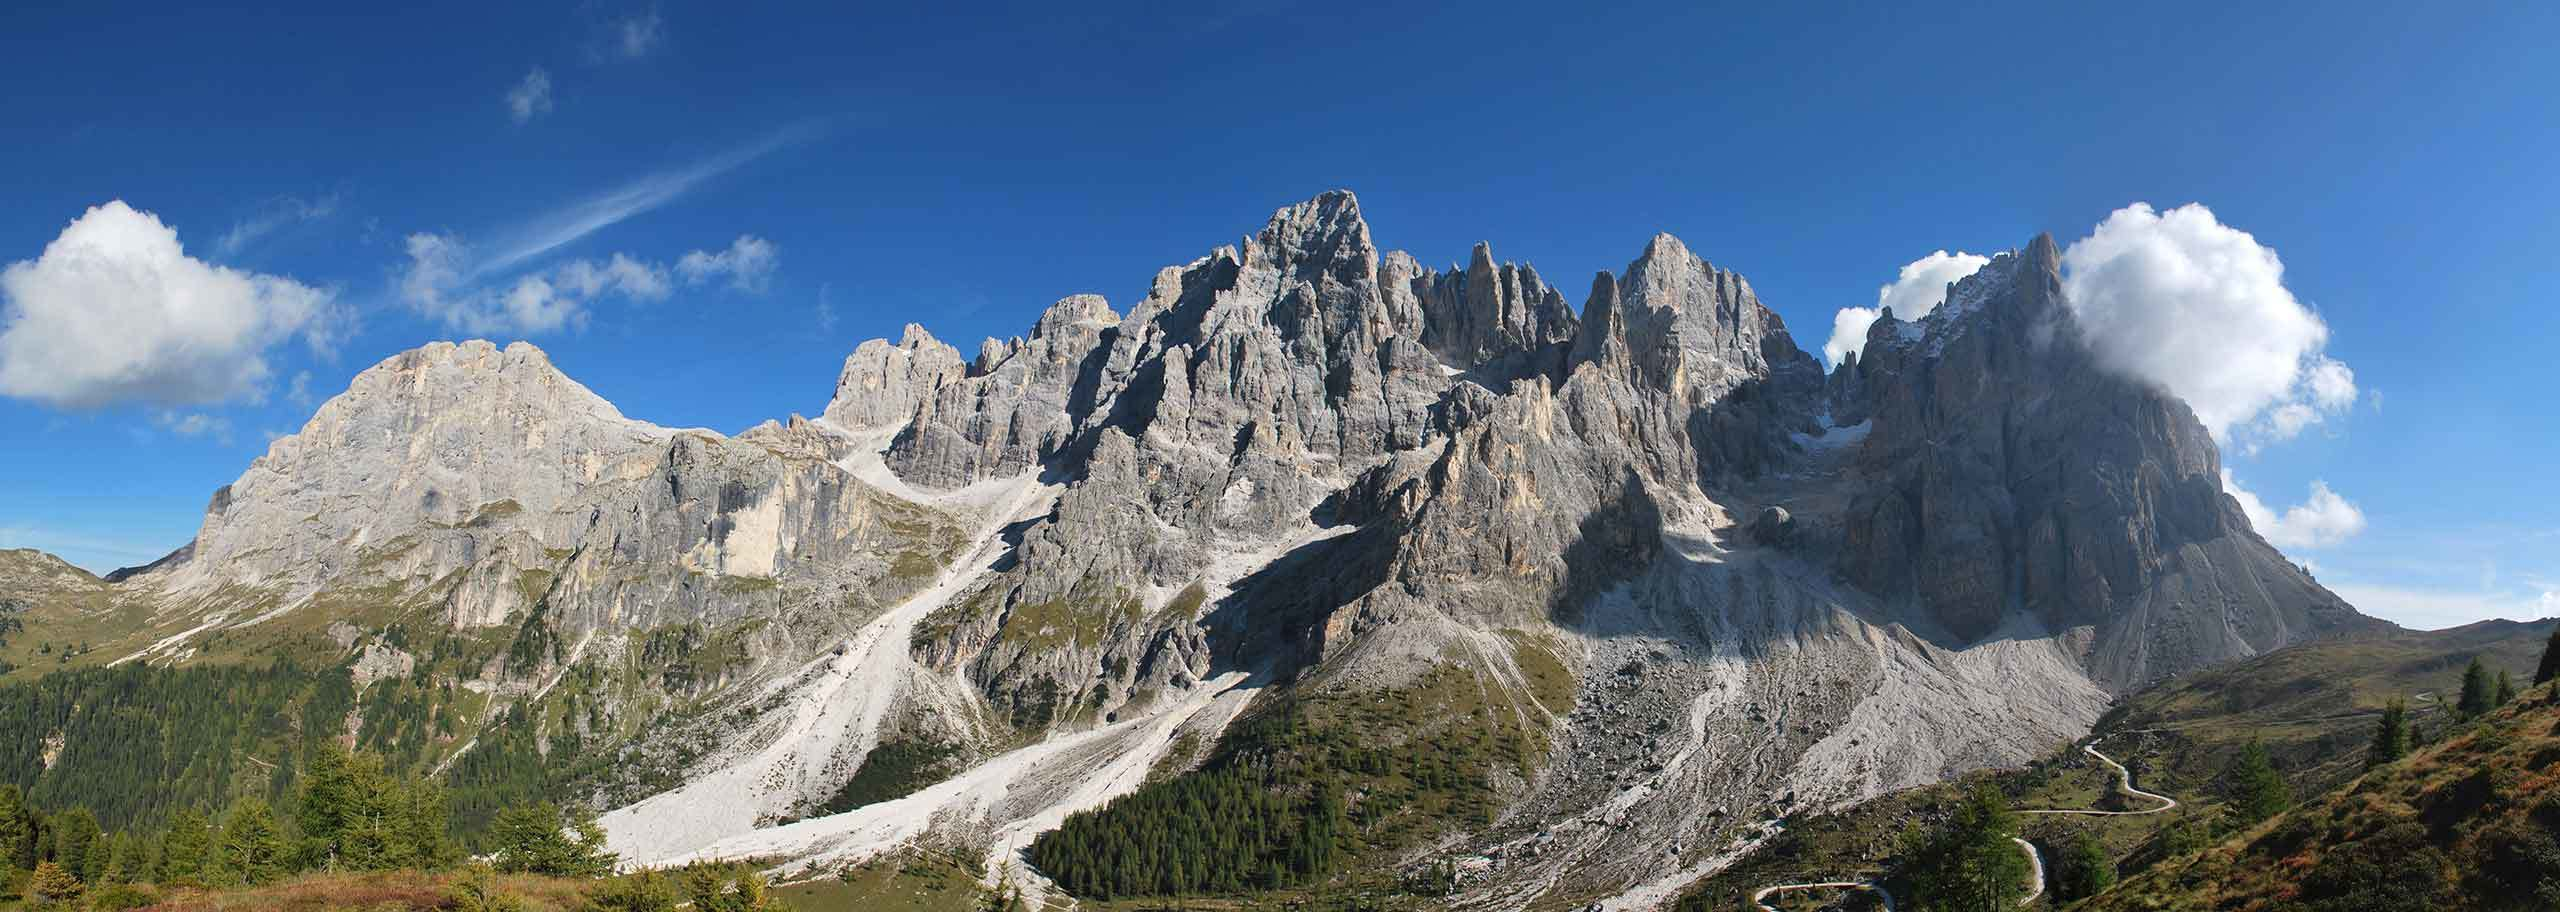 Paneveggio-Pale di San Martino Natural Park - Author: Carlo Albino Turra